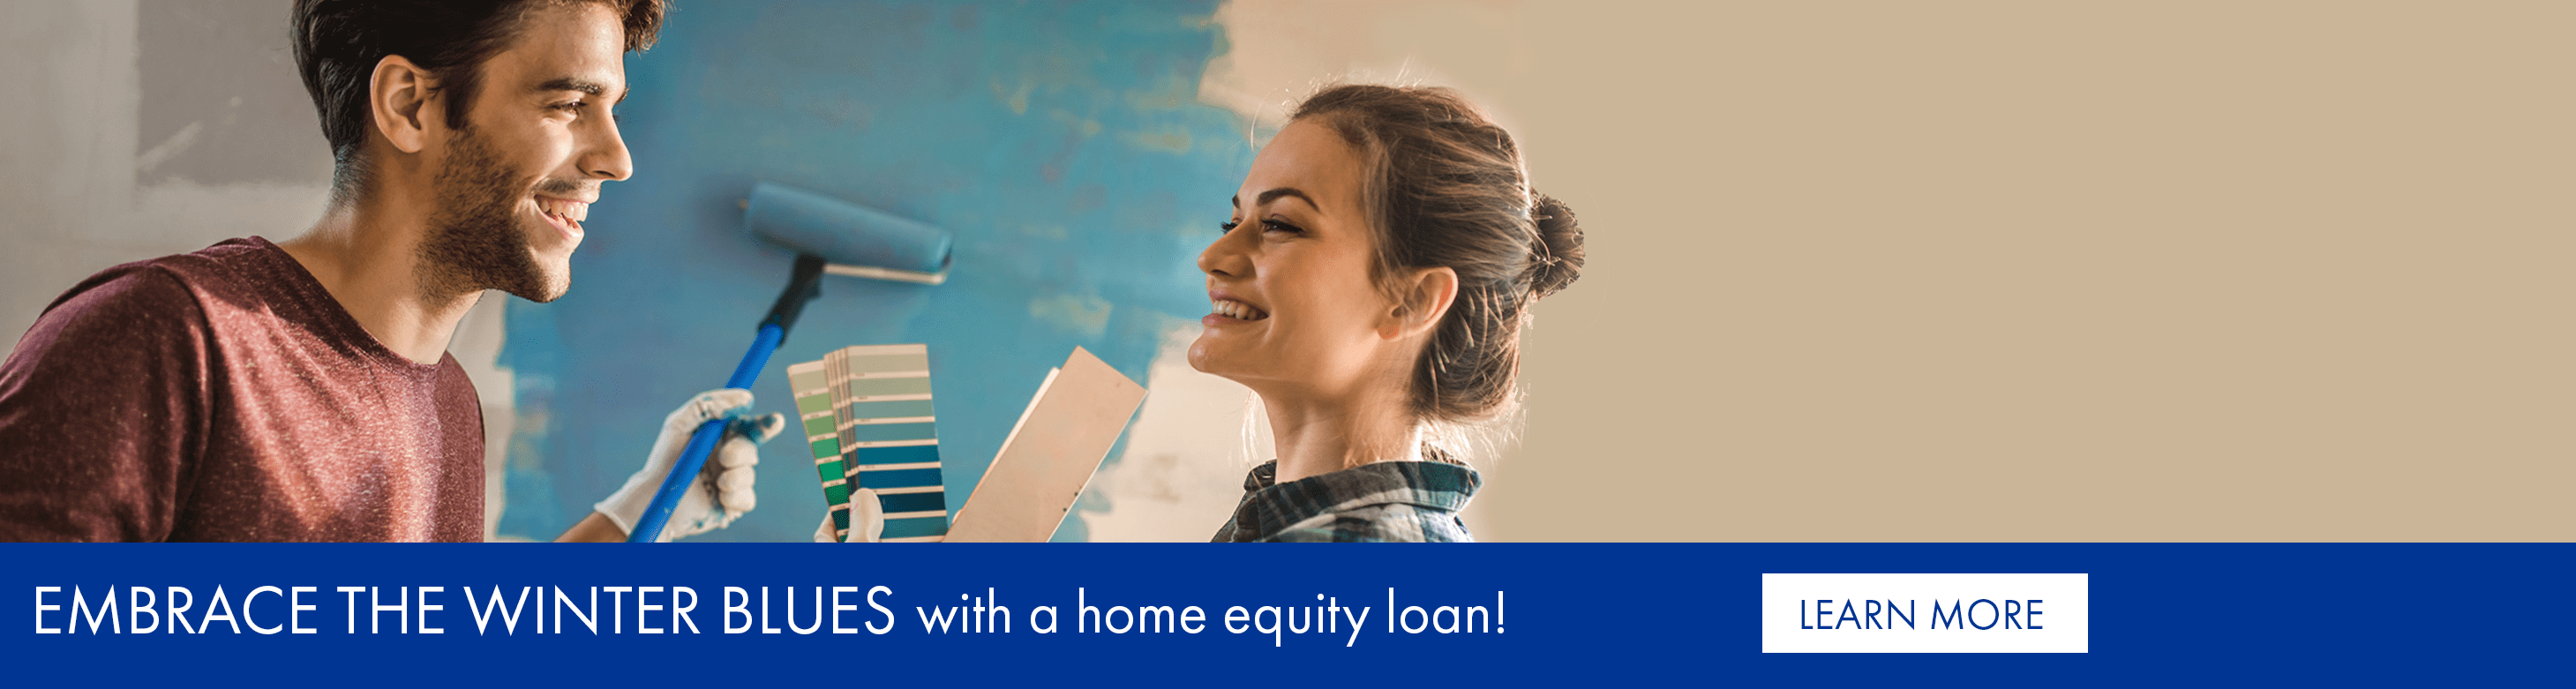 Embrace the winter blues with a home equity loan!